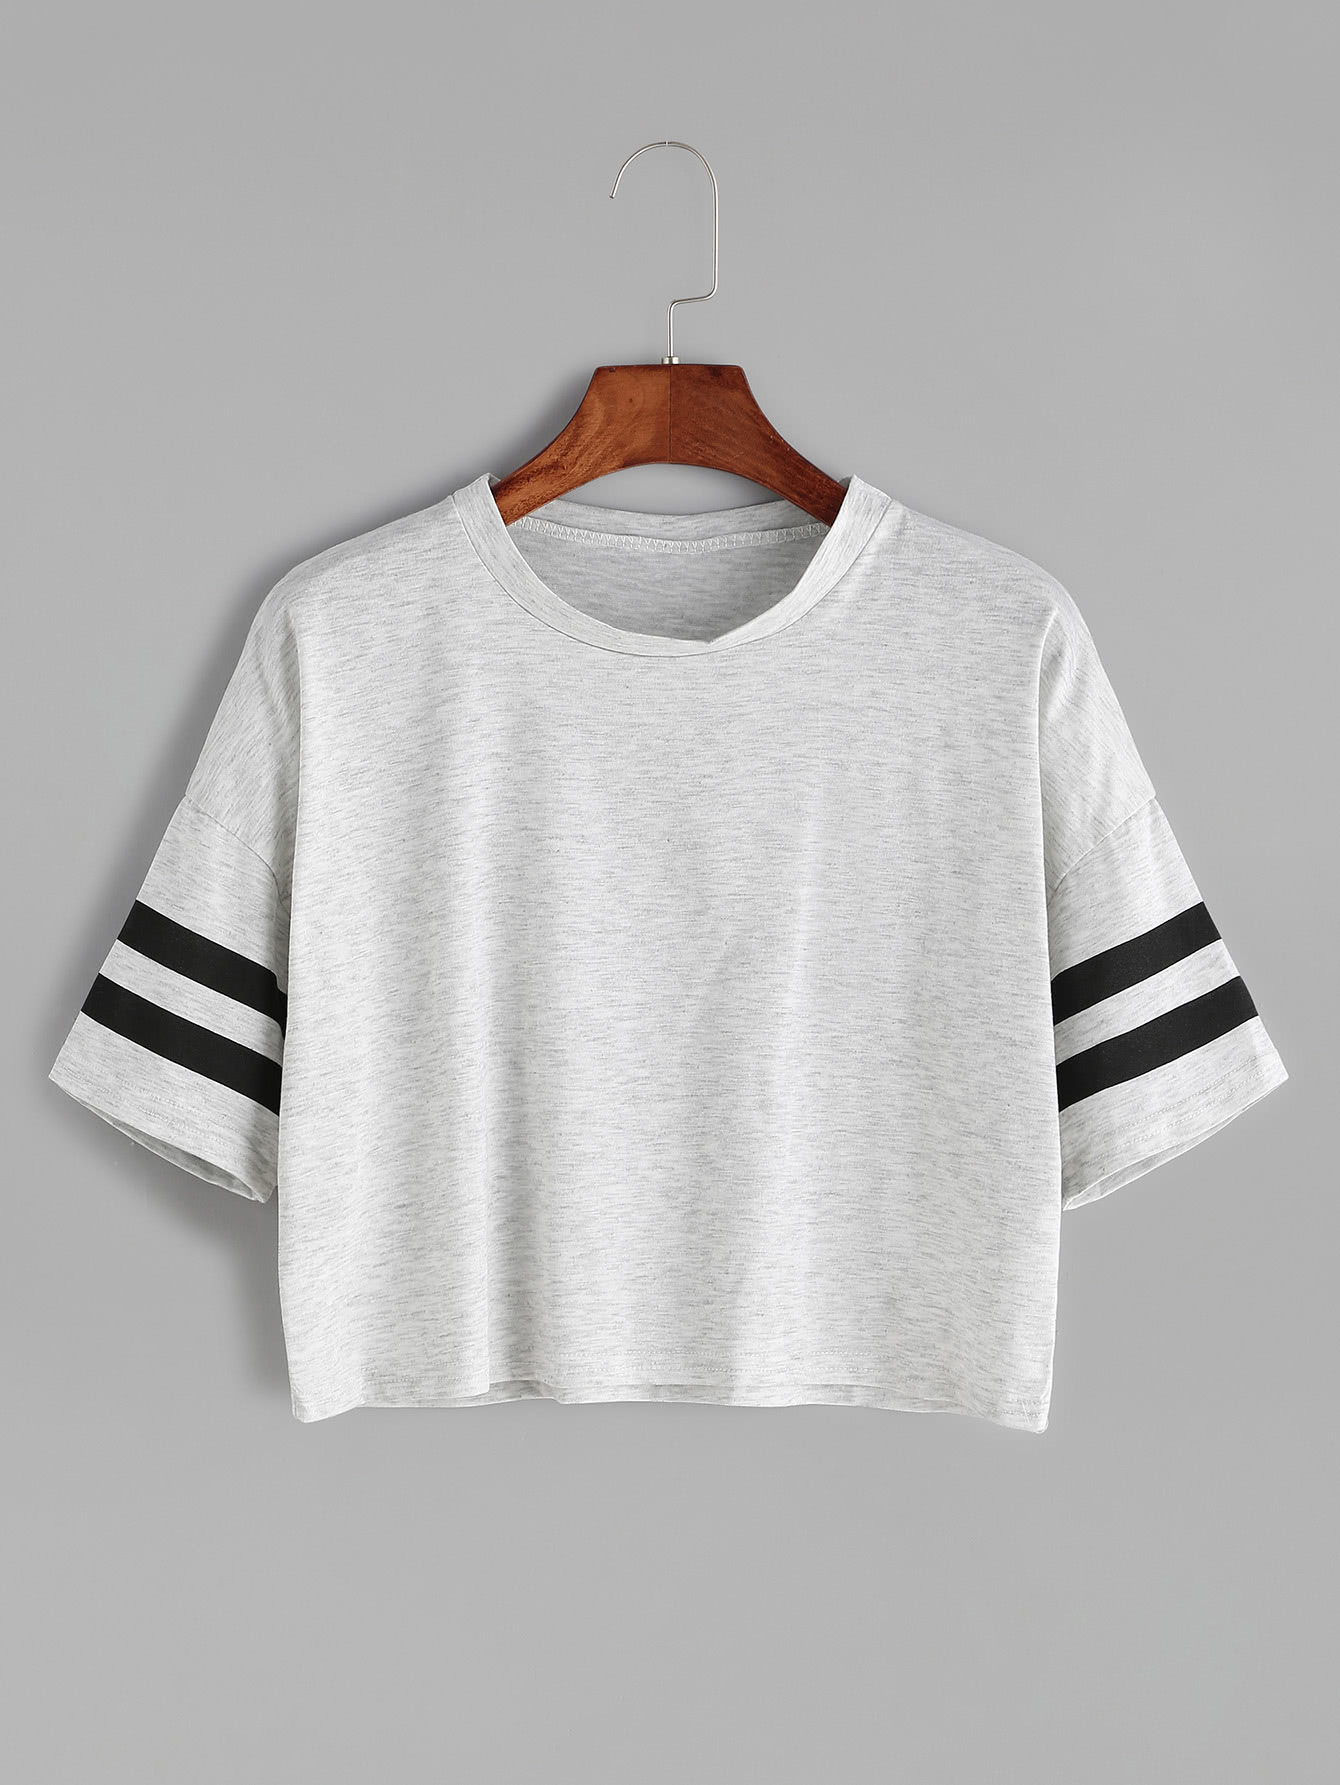 Grey Dropped Shoulder Seam Varsity Striped Crop T-shirt striped grommet lace up dropped shoulder top